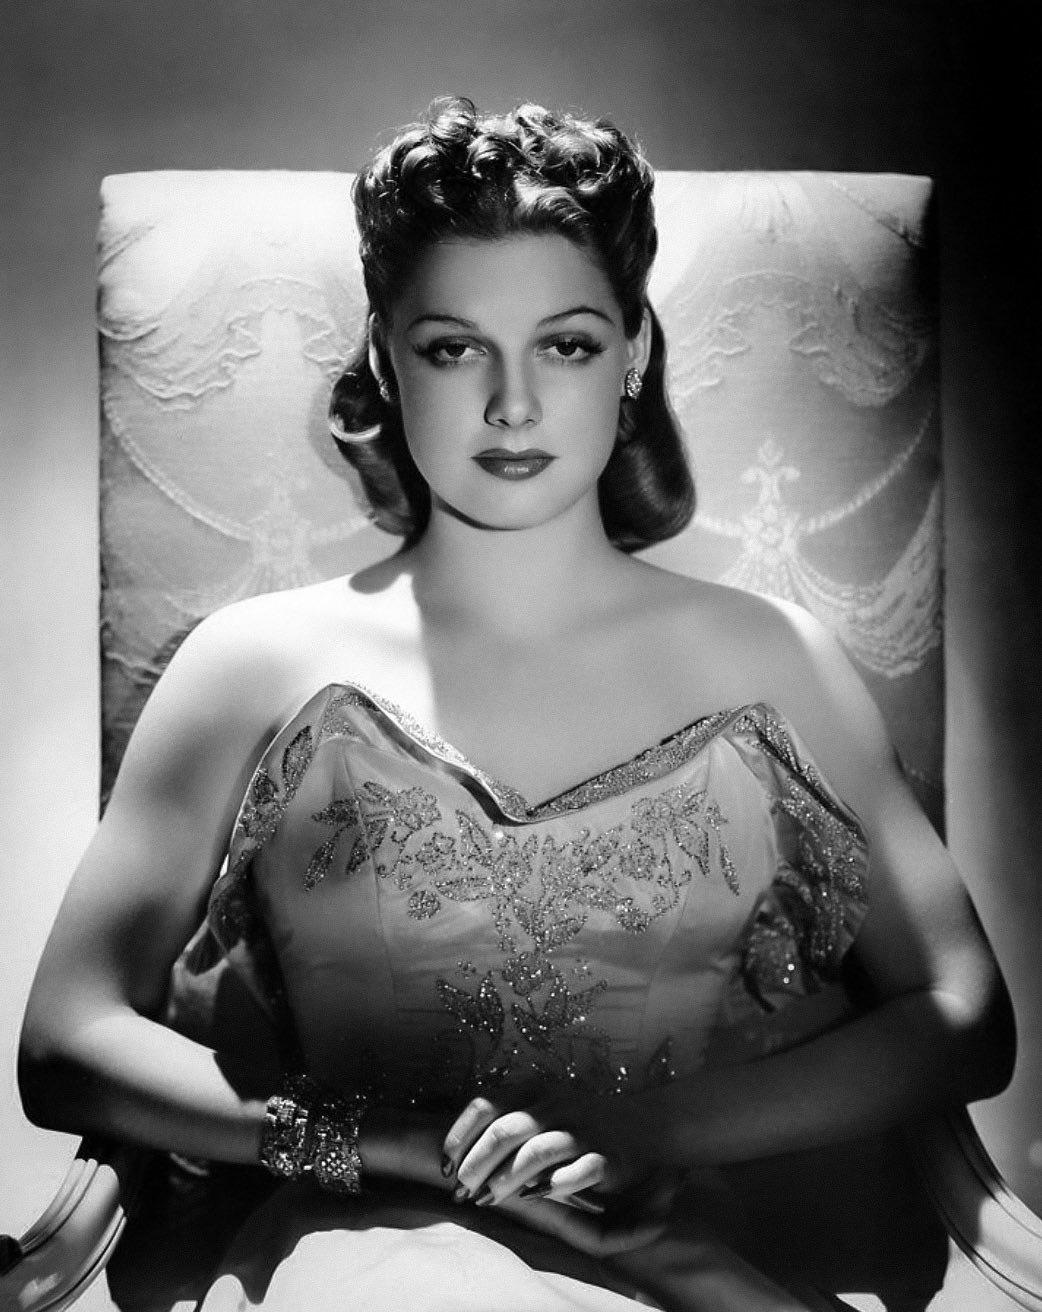 Ann Sheridan photographed by George Hurrell 1942